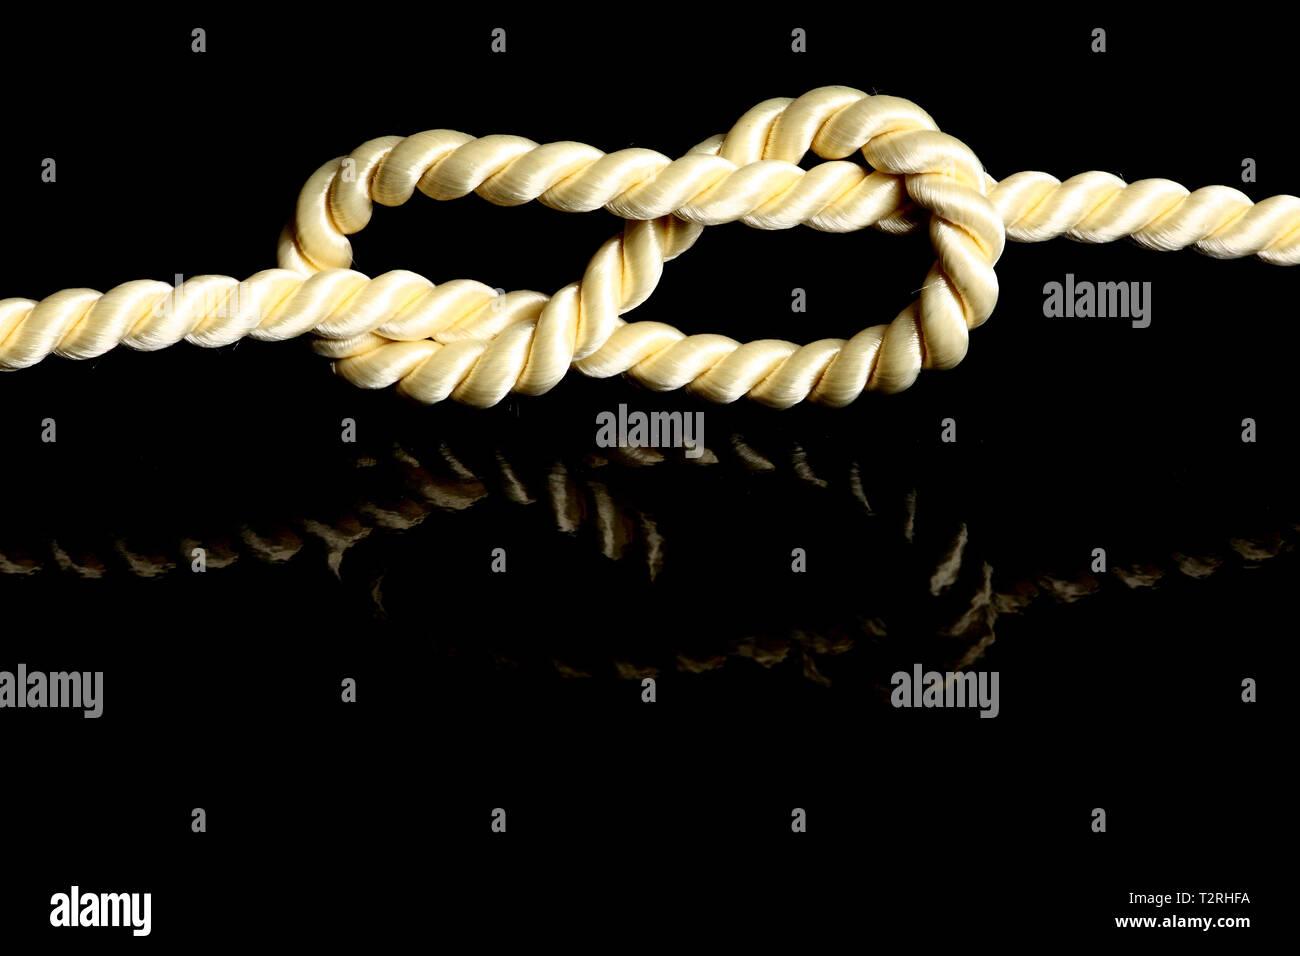 A knot against a black background. The node is reflected on the background. - Stock Image